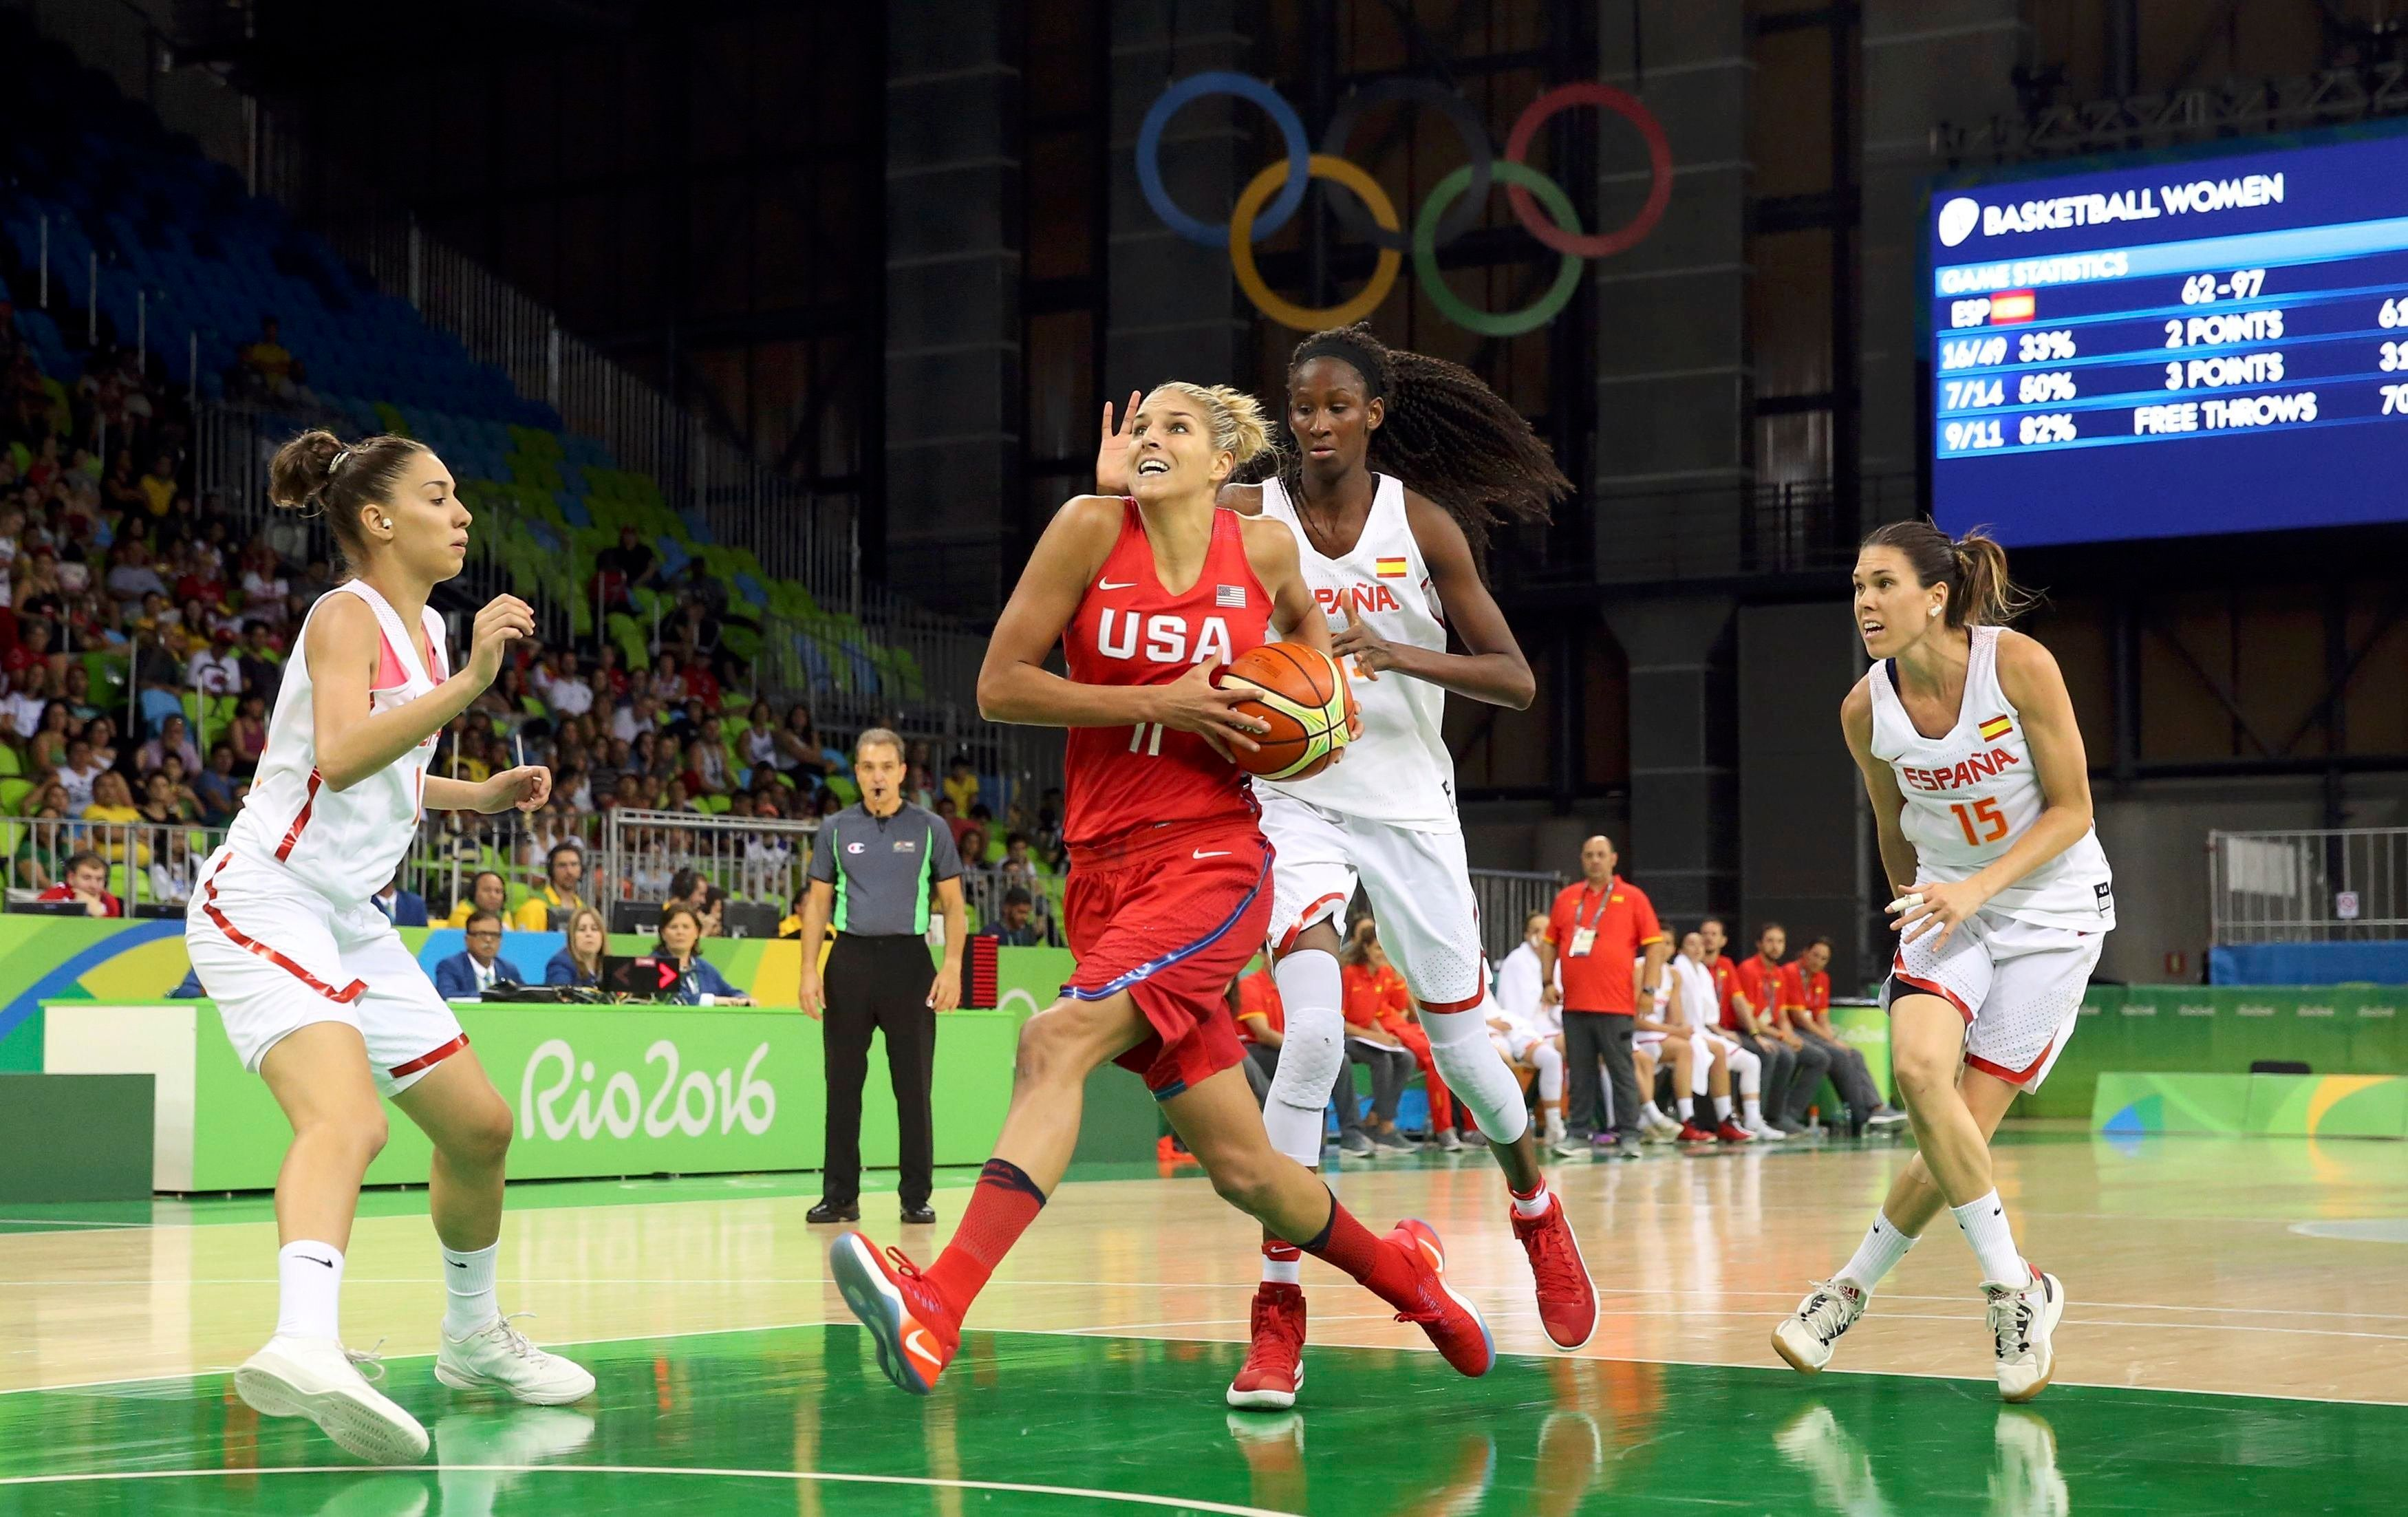 2016 Rio Olympics - Basketball - Preliminary - Women's Preliminary Round Group B Spain v USA - Youth Arena -  Rio de Janeiro, Brazil - 08/08/2016 - Marta Xargay (ESP) of Spain, Elena Delle Donne (USA) of USA, Astou Ndour Gueye (ESP) of Spain and Anna Cruz (ESP) of Spain (R) compete. REUTERS/Shannon Stapleton  FOR EDITORIAL USE ONLY. NOT FOR SALE FOR MARKETING OR ADVERTISING CAMPAIGNS.